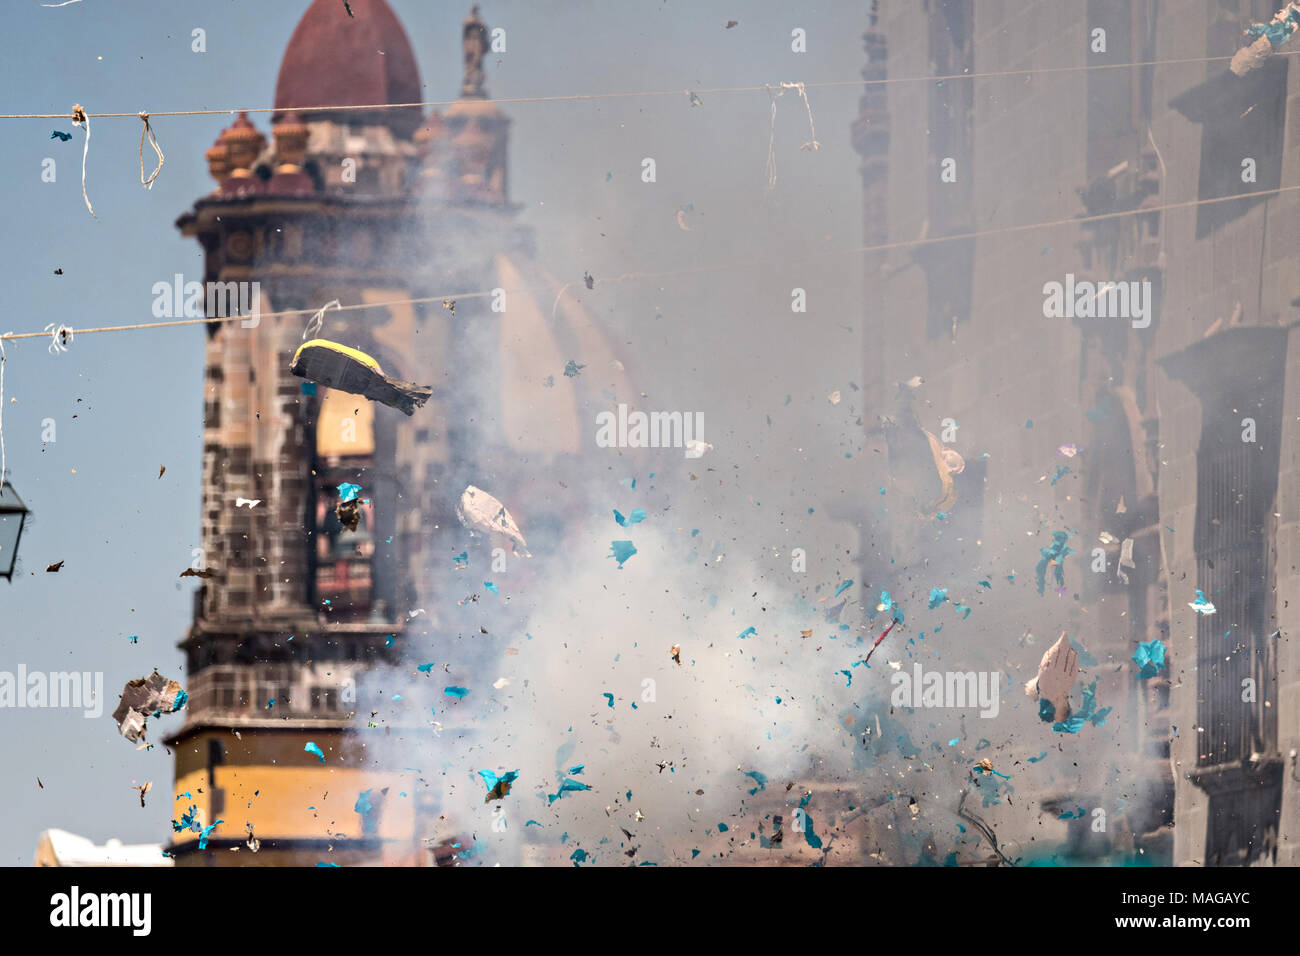 An effigy of U.S. President Donald Trump explodes during the Burning of Judas Easter-time ritual marking the end of Holy Week April 1, 2018 in San Miguel de Allende, Mexico. While the tradition includes burning a paper effigy of Judas a recent popular addition has been paper doll caricatures of Donald Trump across Mexico. - Stock Image